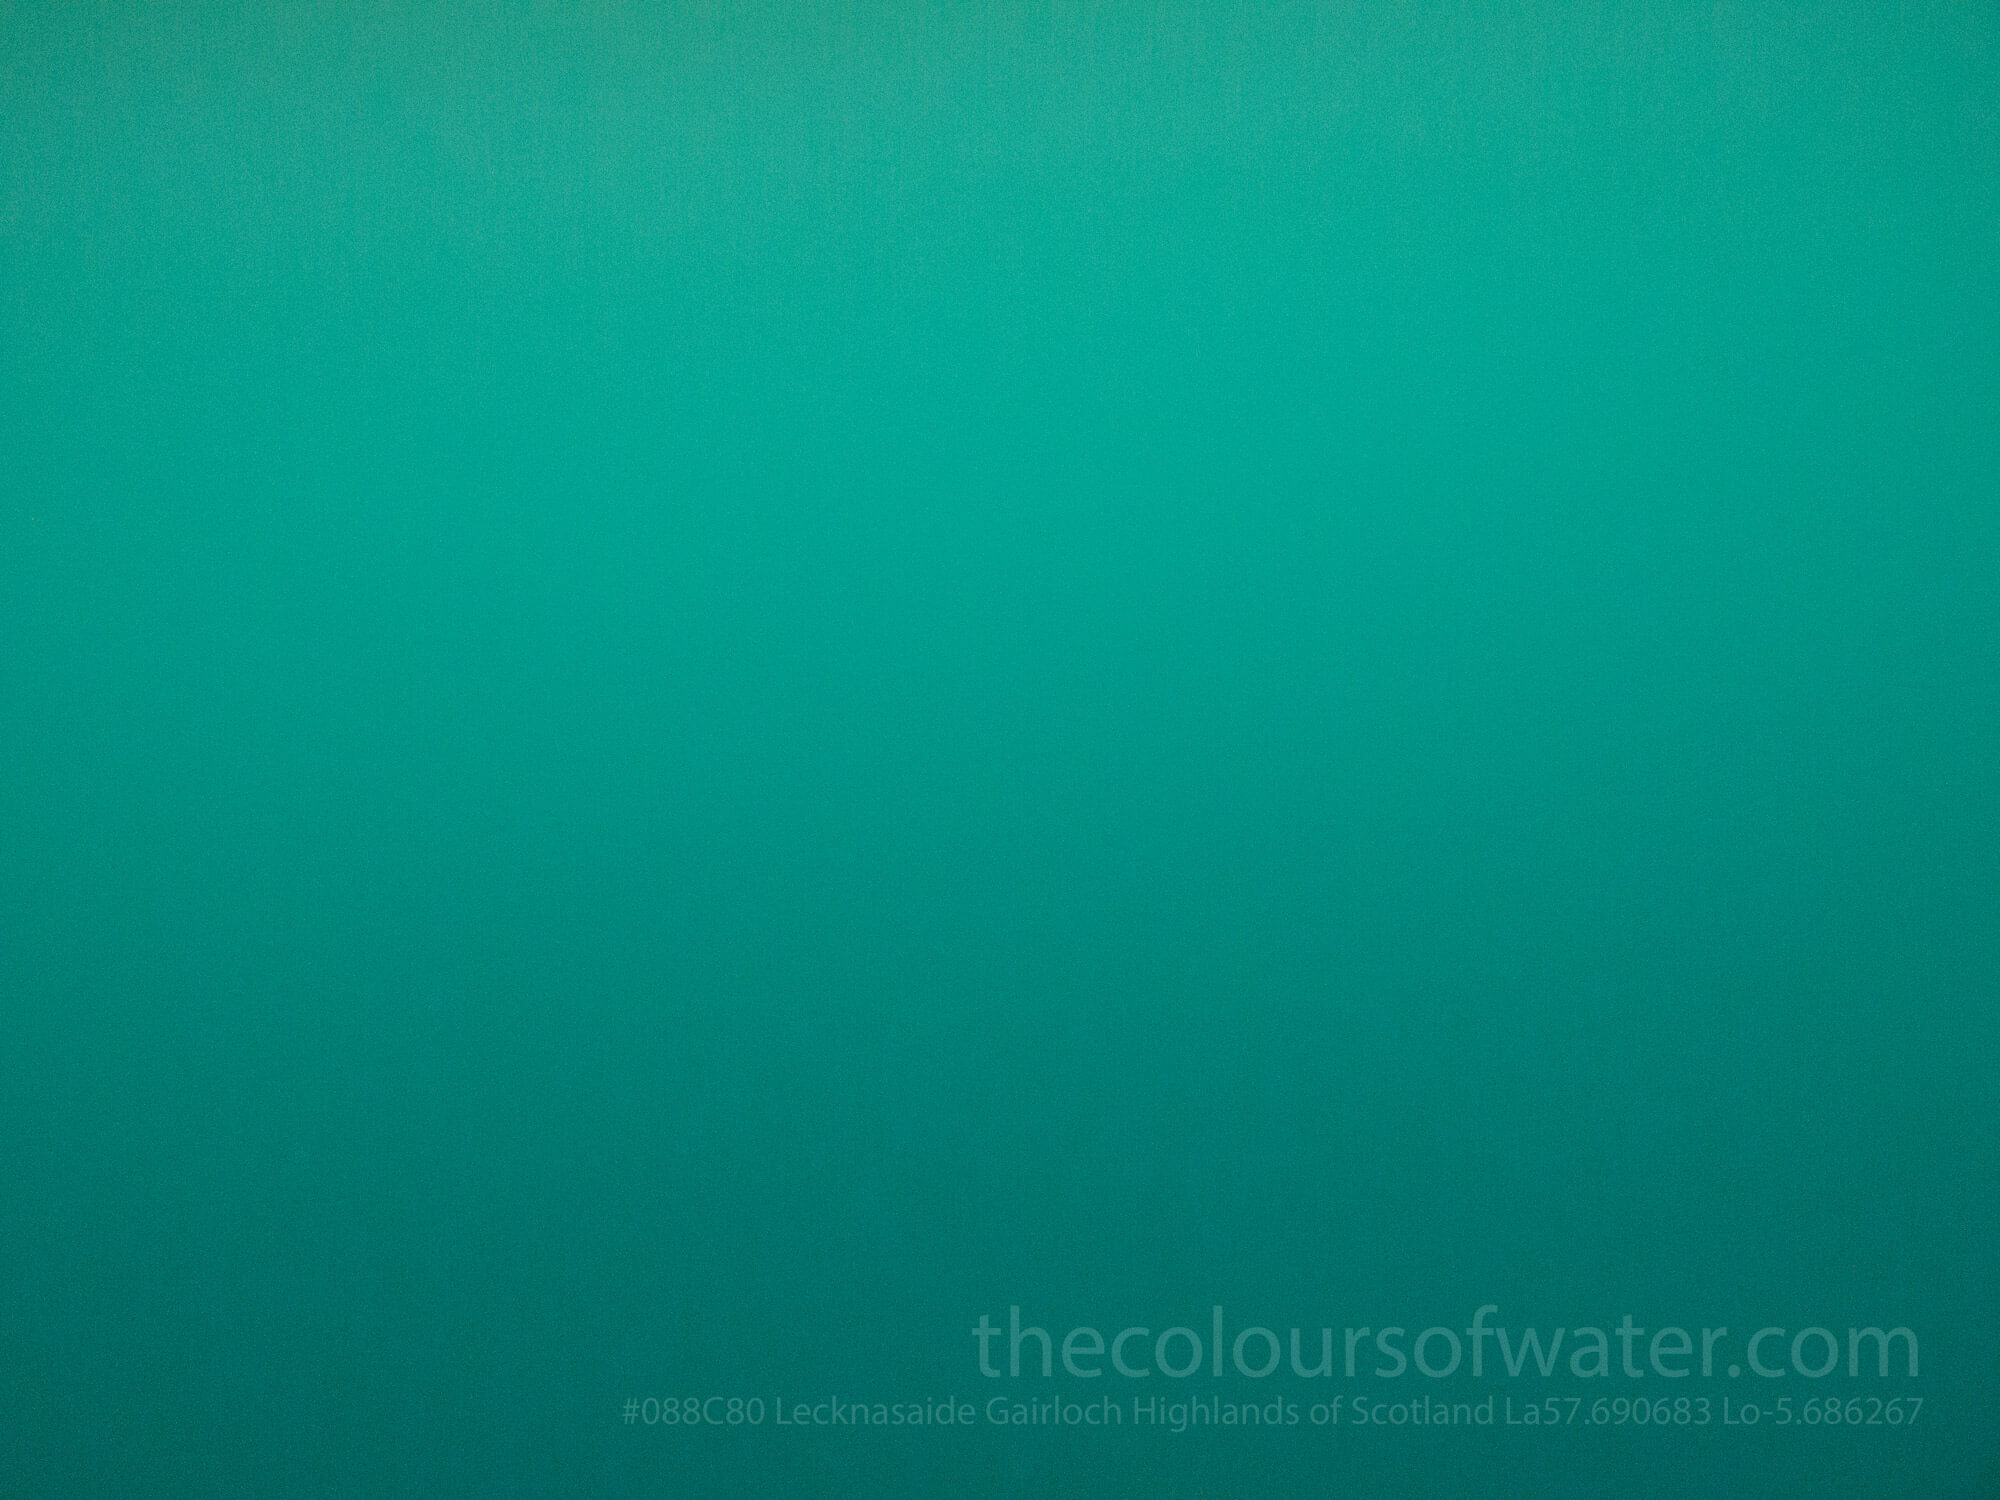 Lecknasaide Gairloch, Wester Ross, Highlands of Scotland Colour of Water #088C80